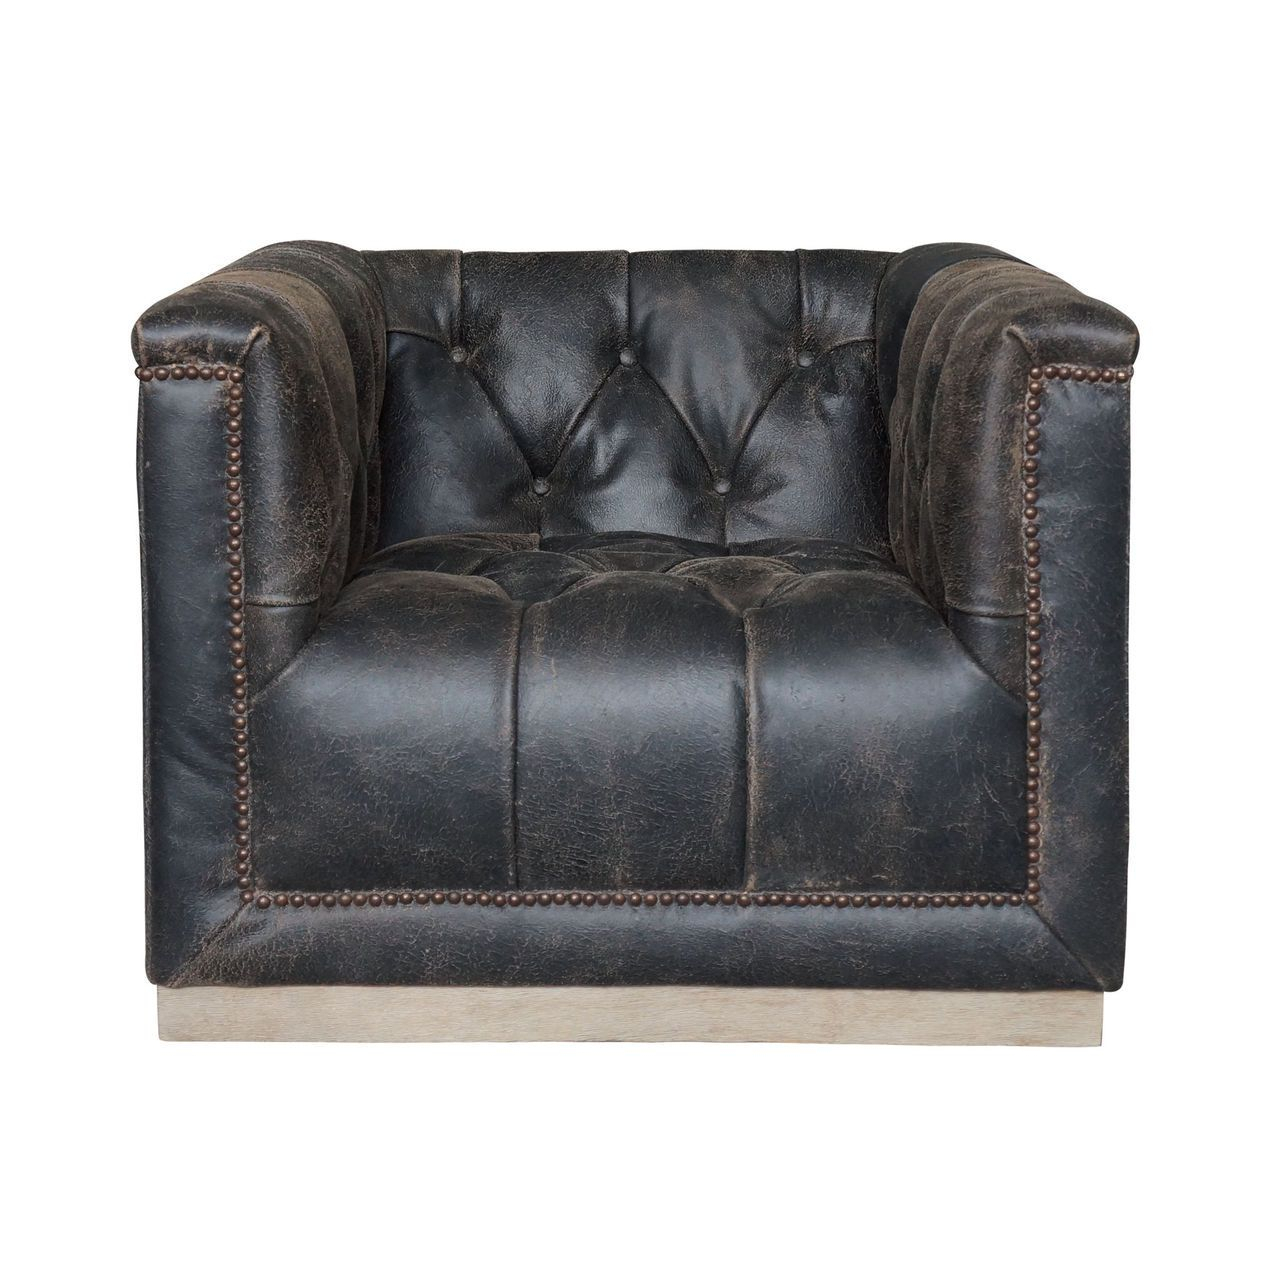 Maxx Distressed Black Leather Swivel Club Chair | Interior Ideas Inside Loft Smokey Swivel Accent Chairs (View 12 of 25)